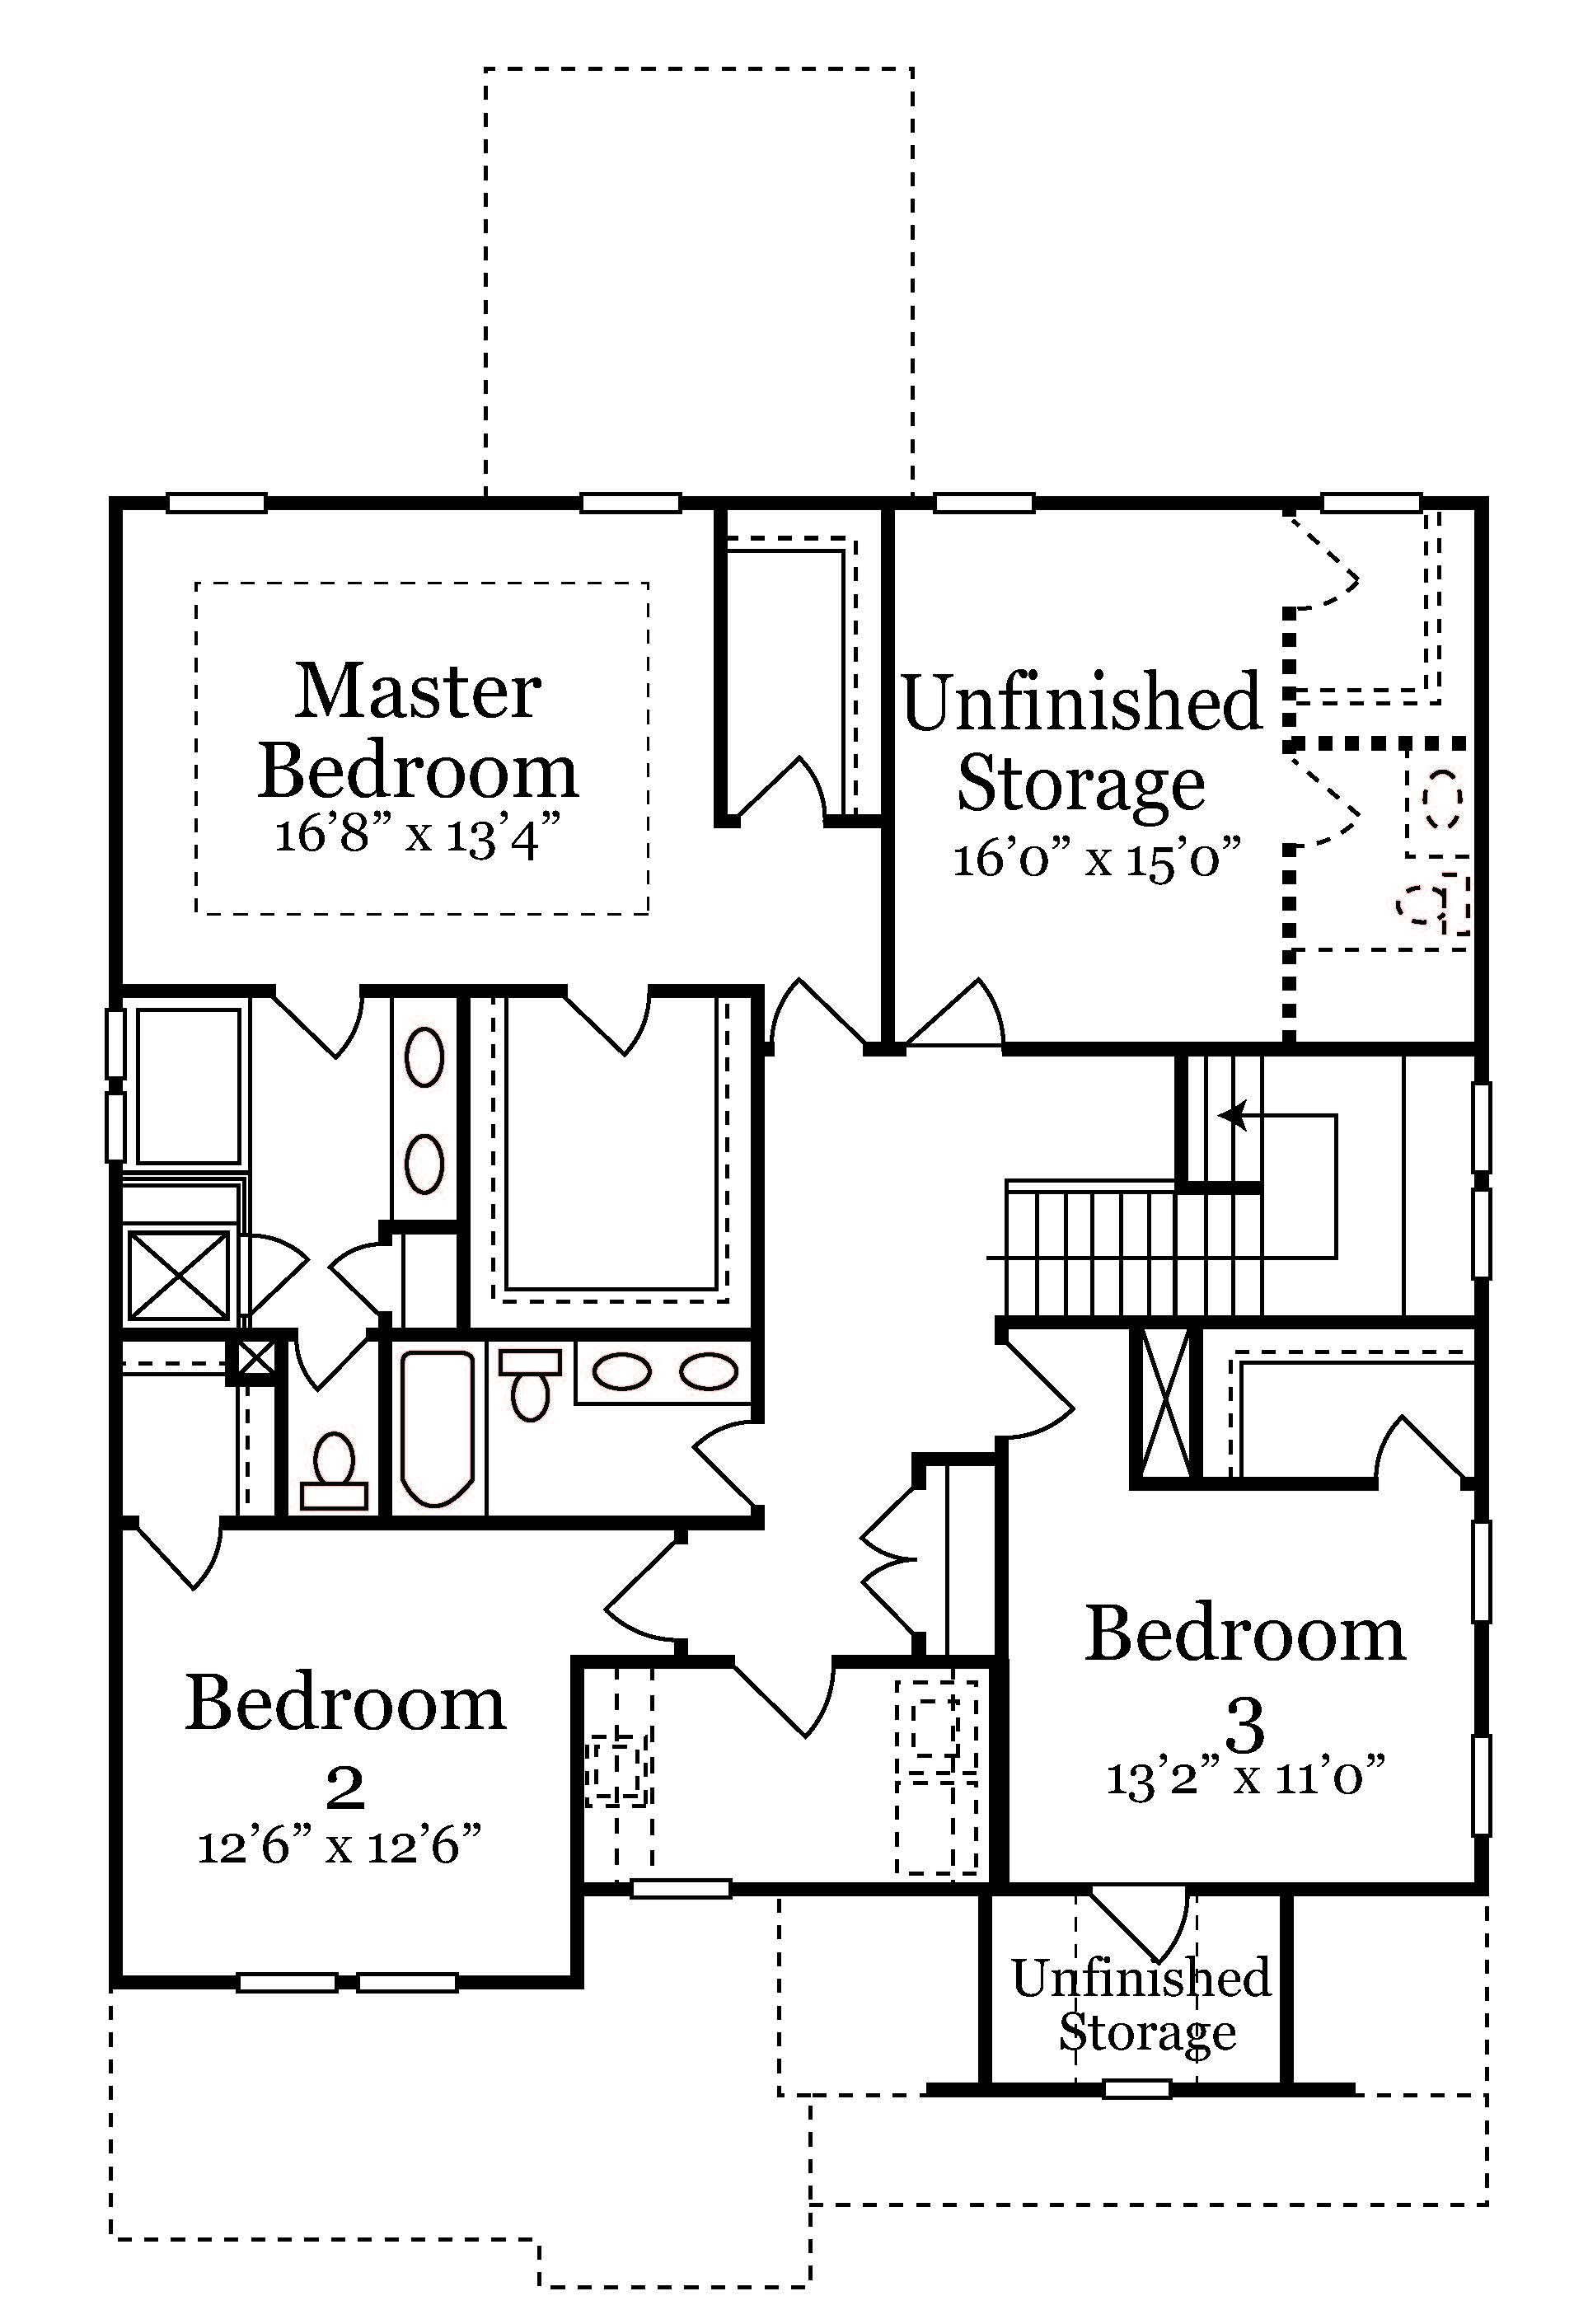 comfort-second-floor.jpg